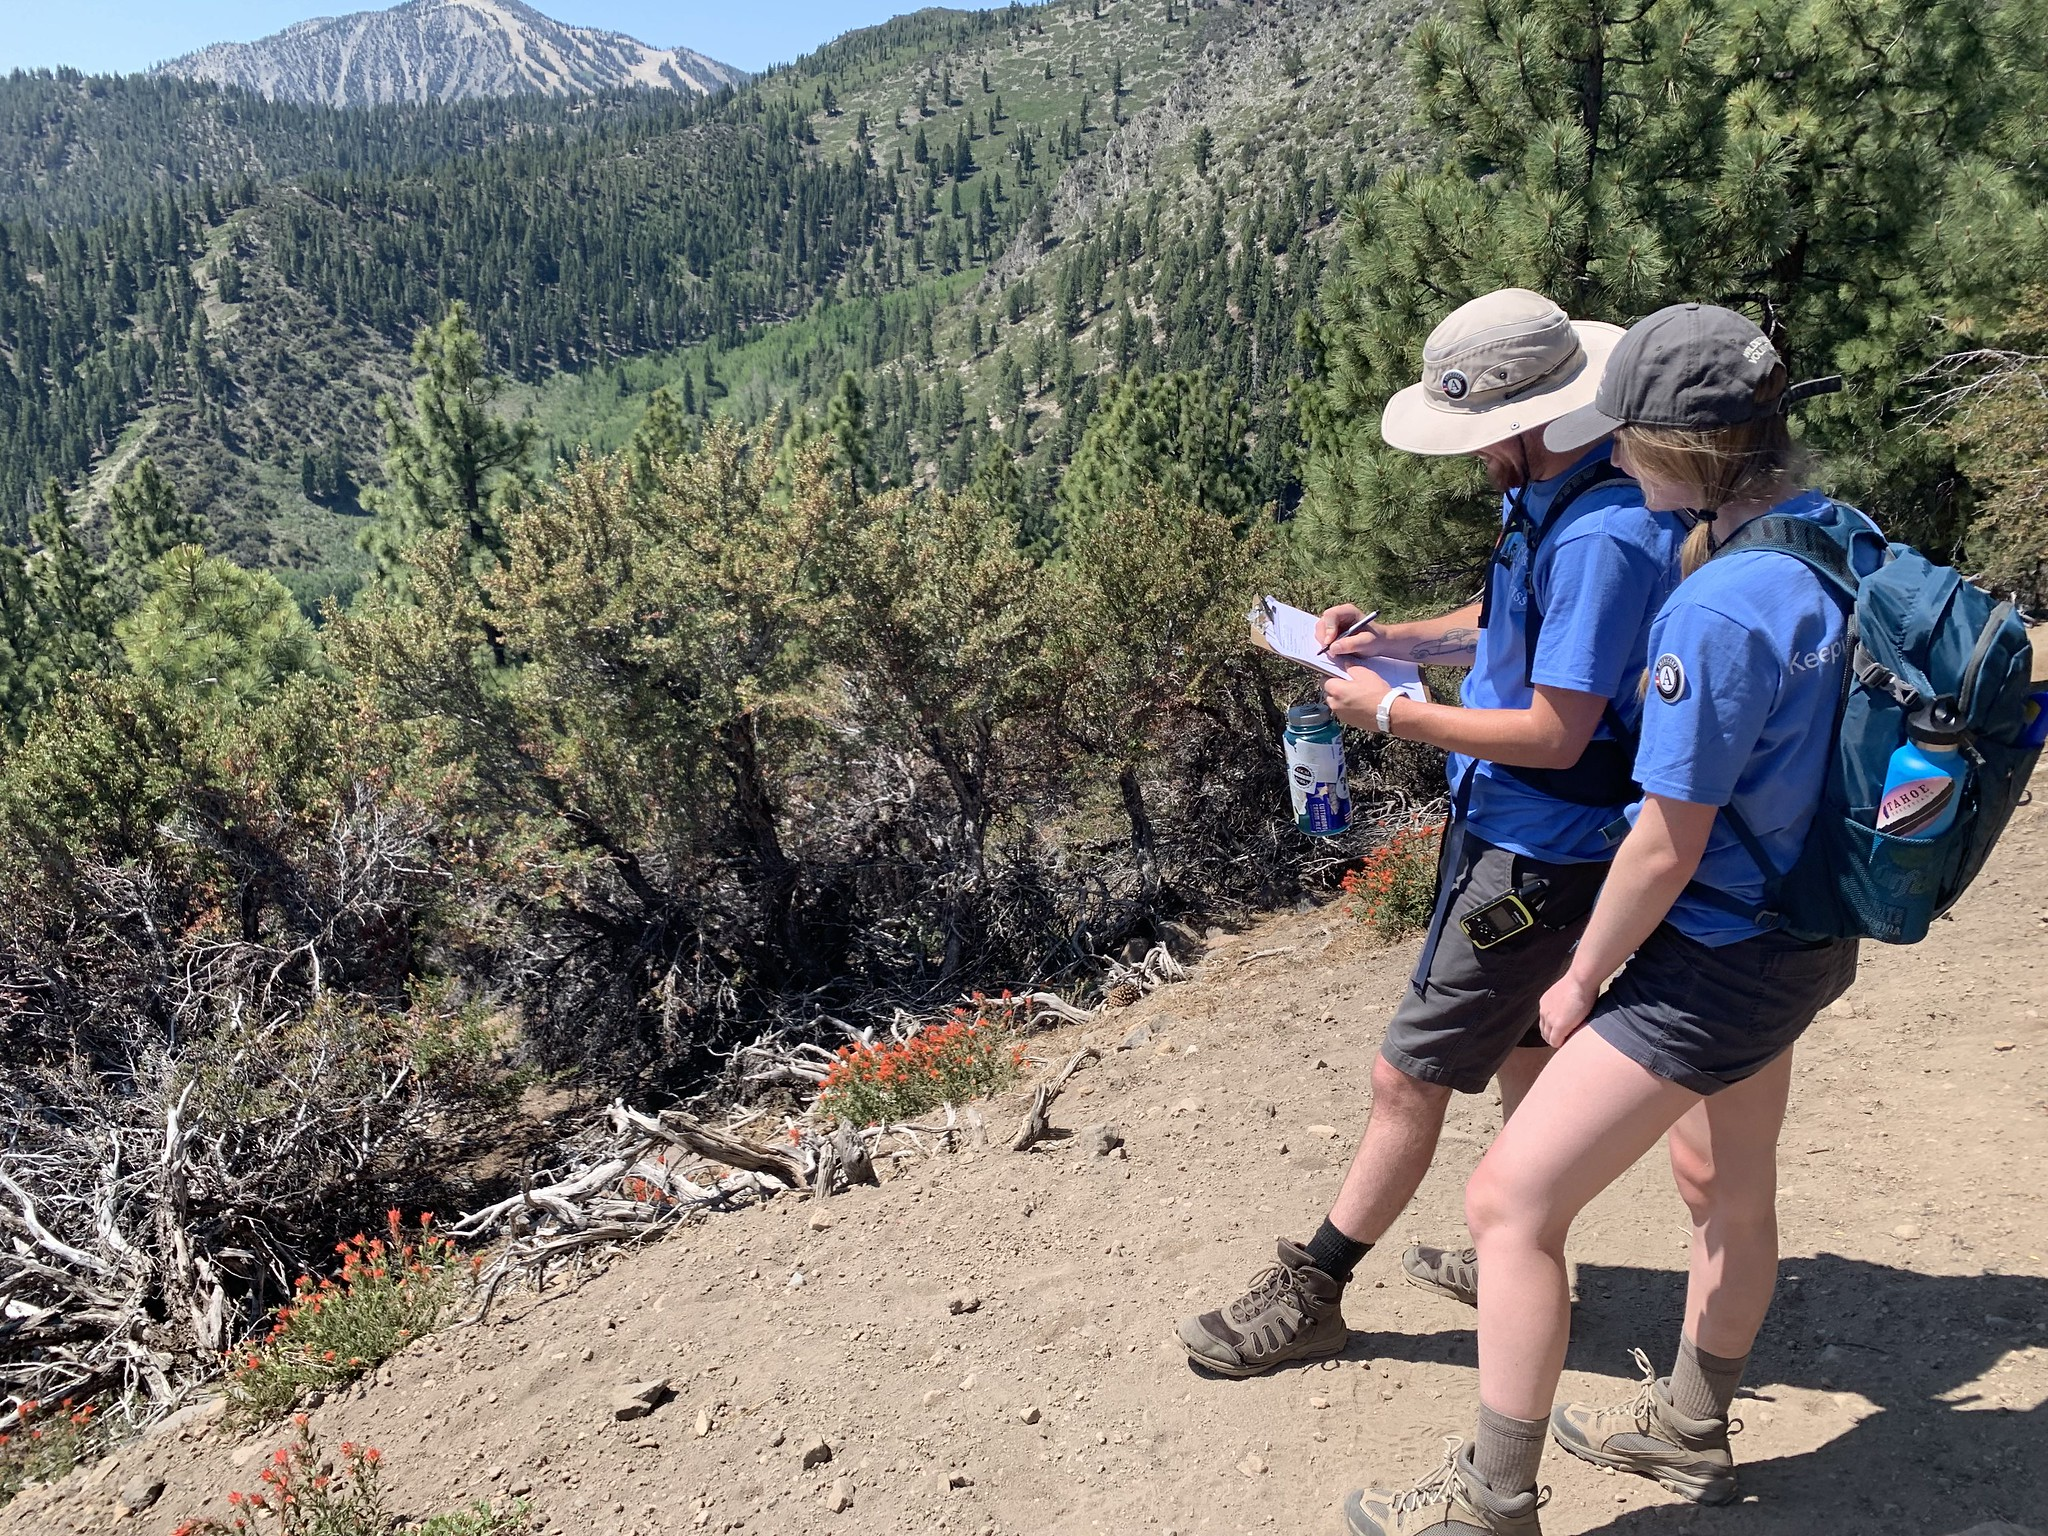 Our Wilderness Techs in the Jones/Whites Area